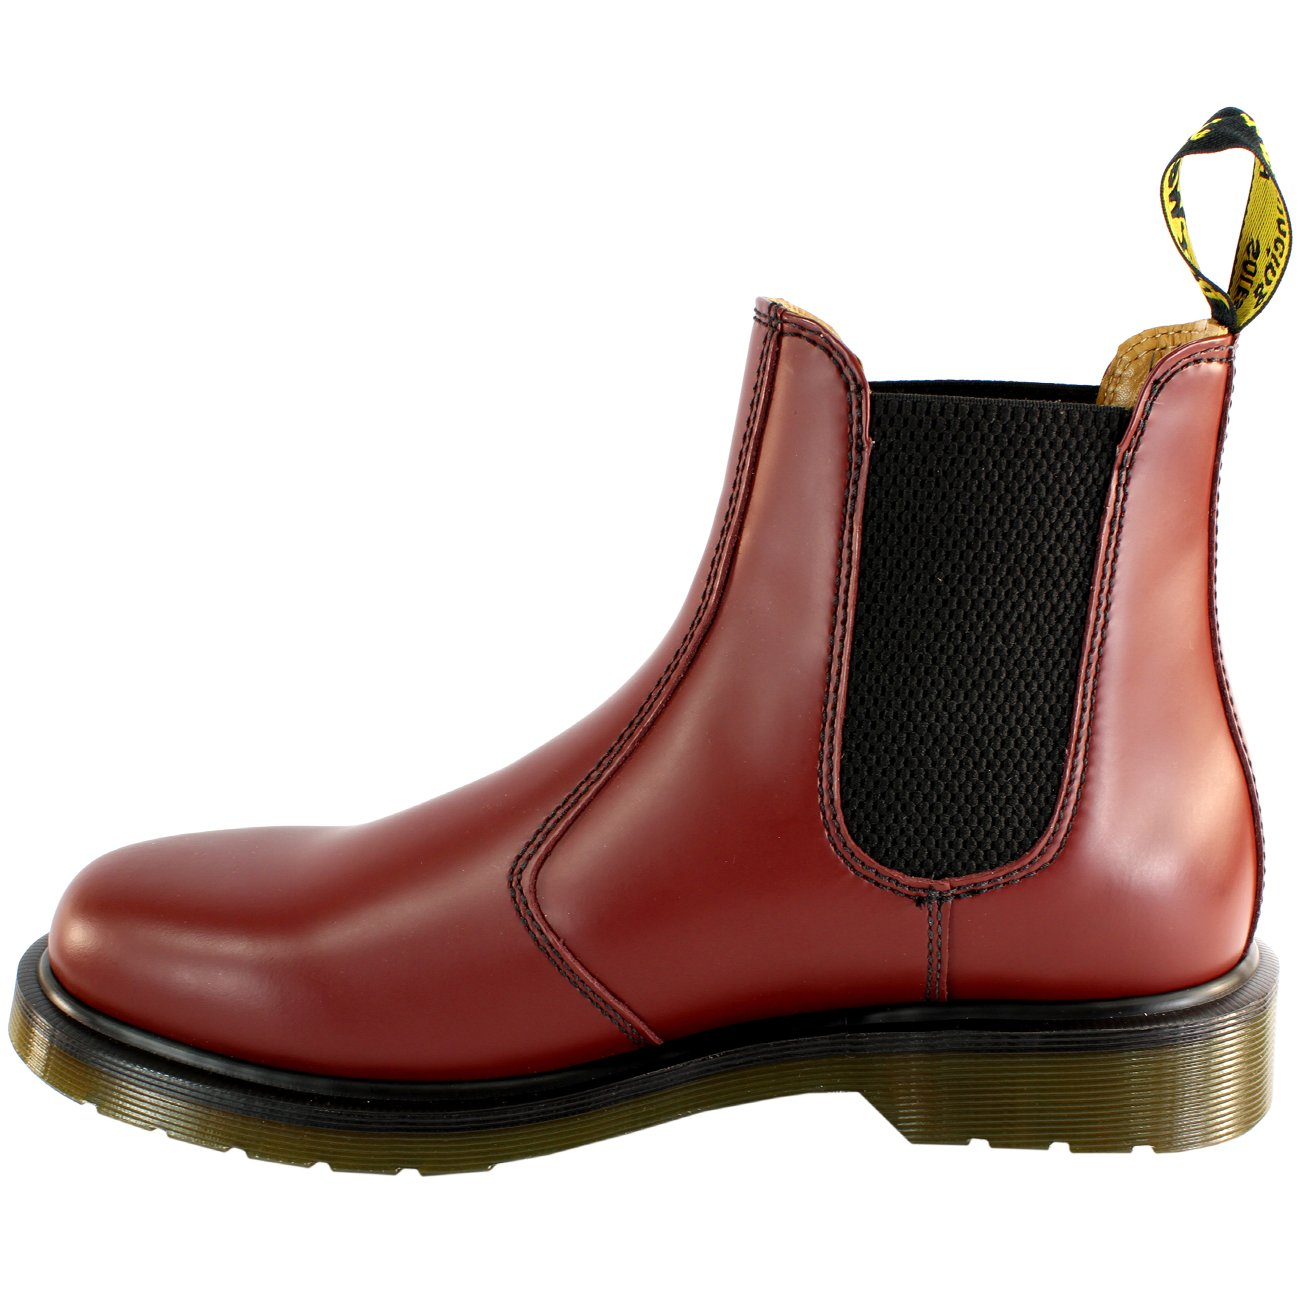 Martens Mens 2976 Classic Chelsea Style Leather Ankle High Boot Red 11 Dr